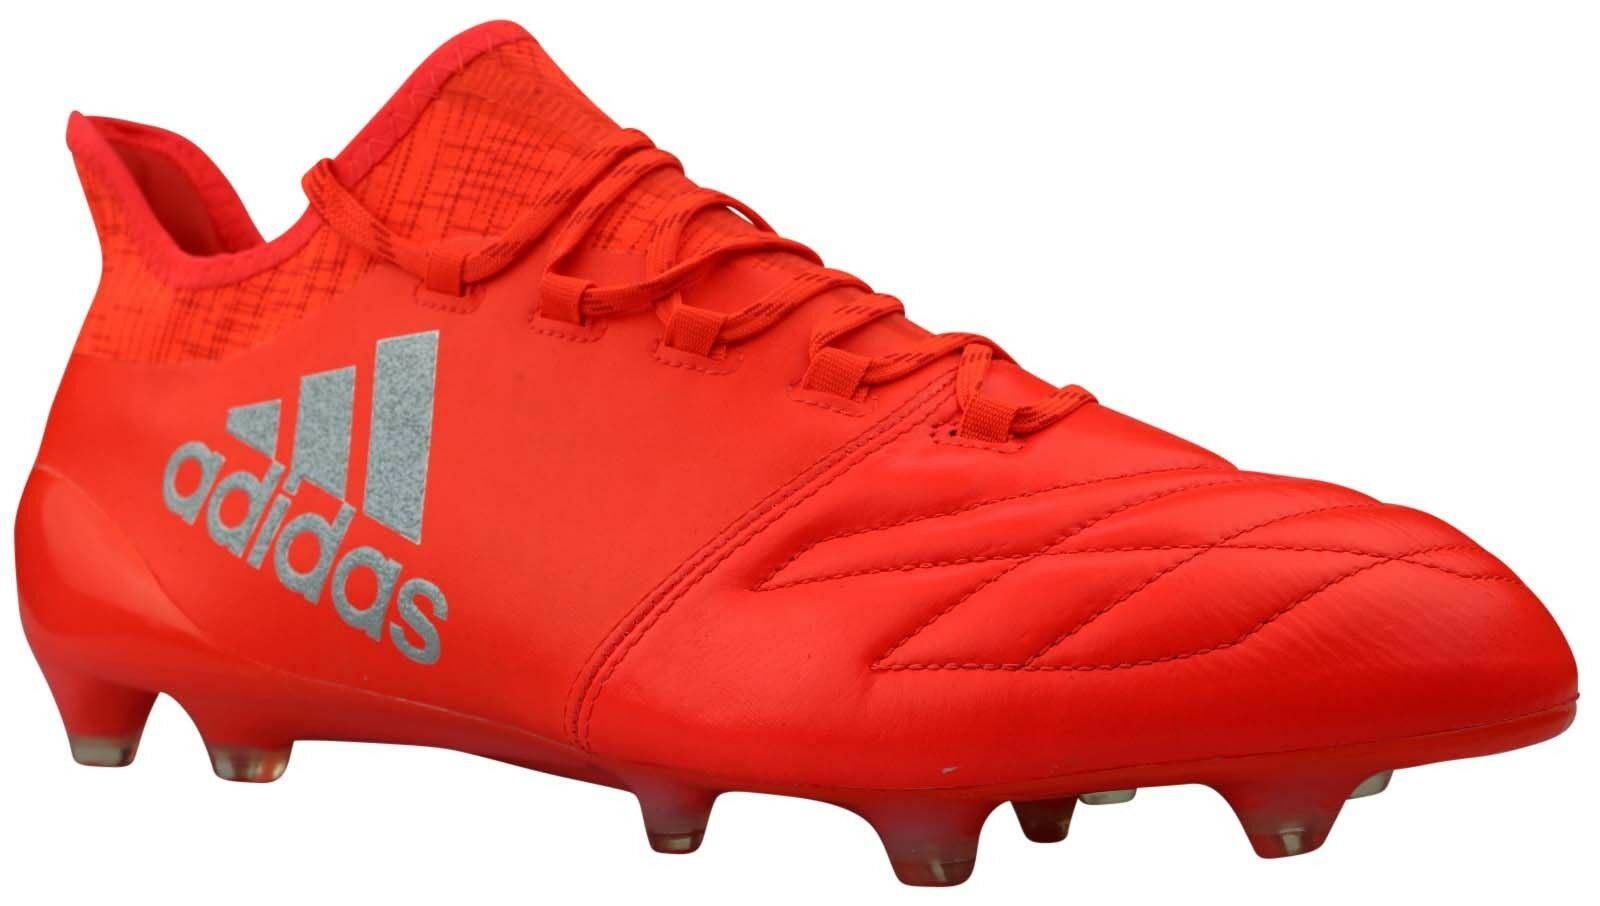 Adidas x 16.1 FG Football chaussures cuir Cam rouge S81966 Taille 46 2 3 nouveau OVP